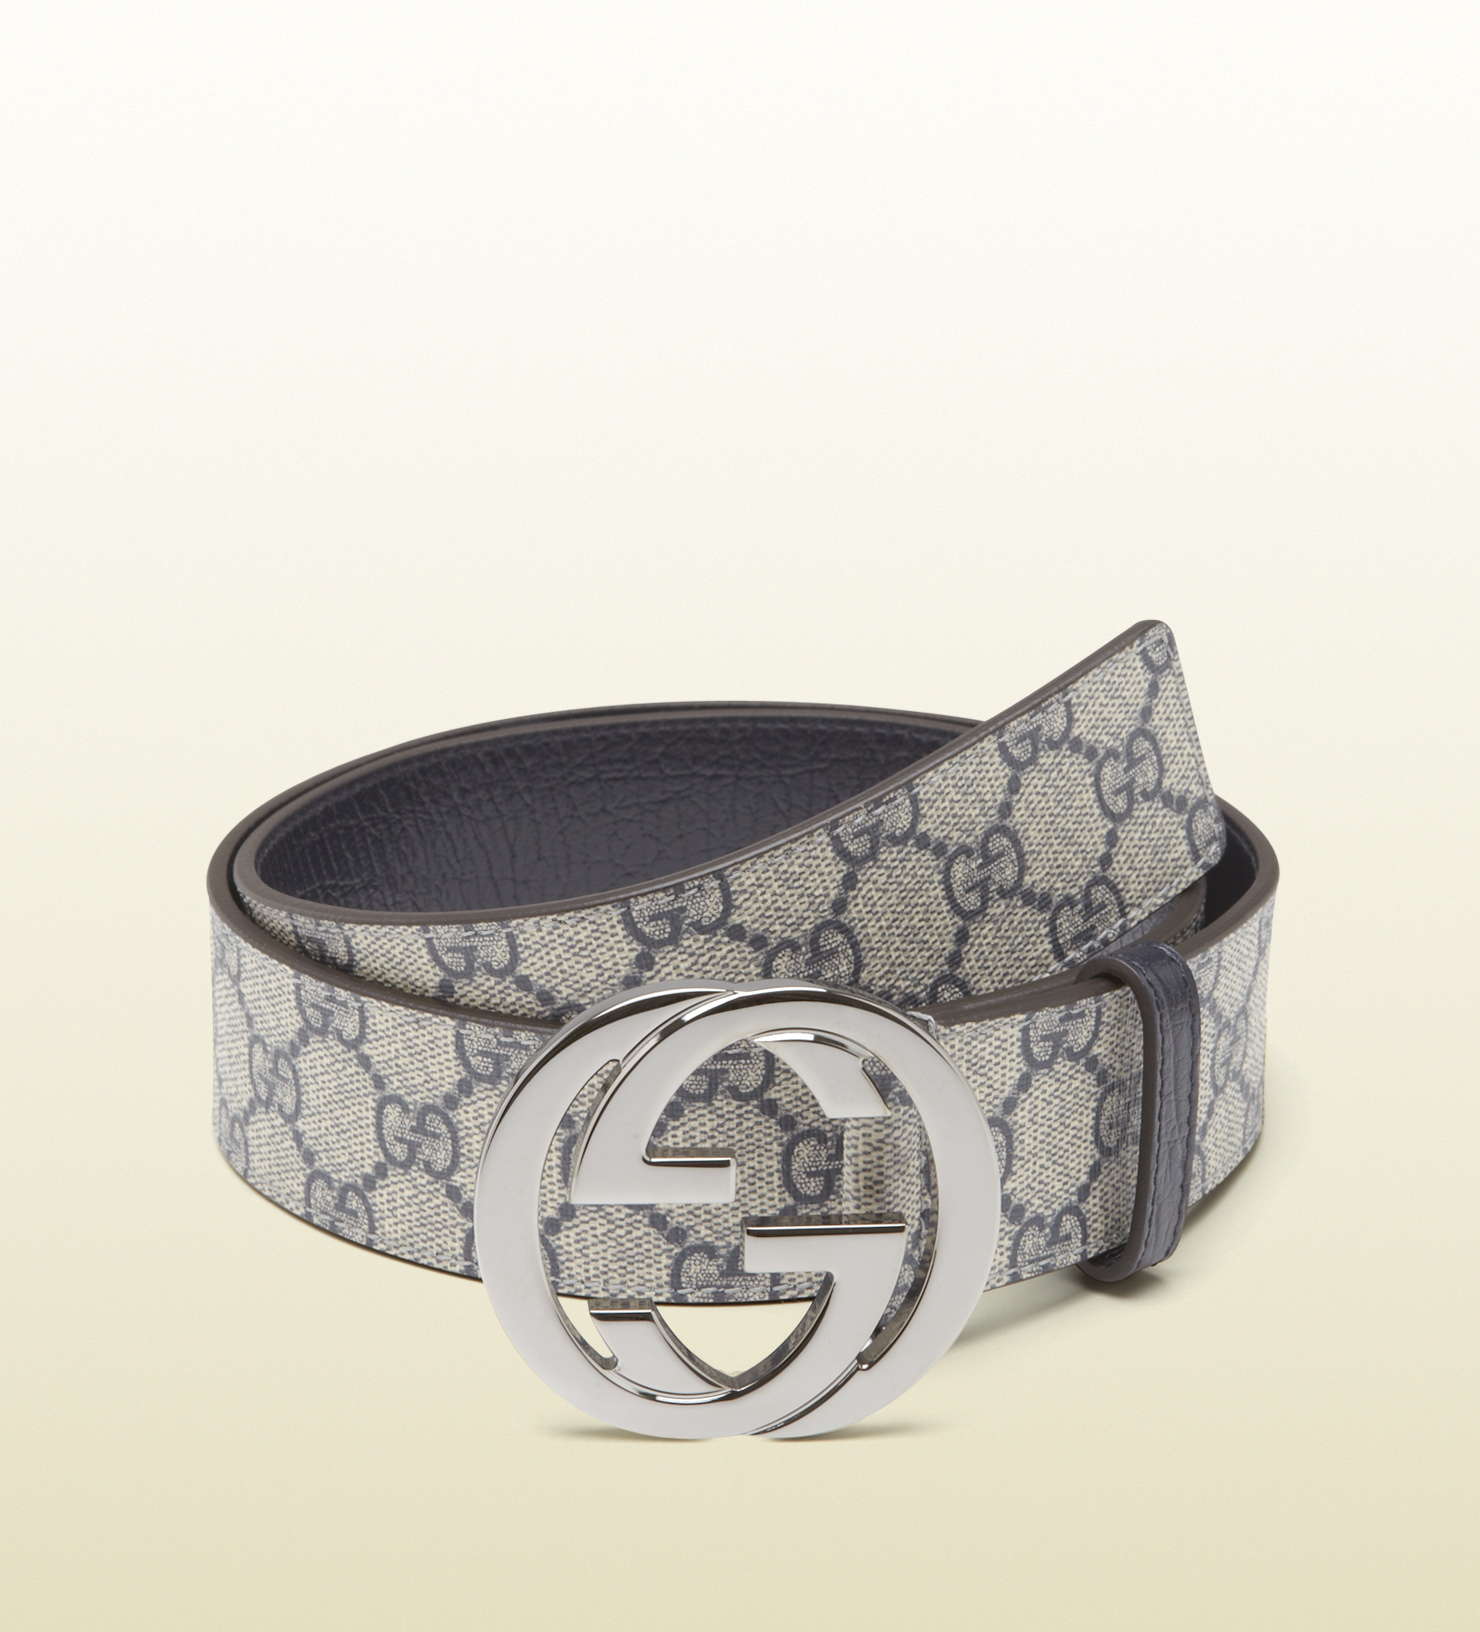 fddd708f94d Lyst - Gucci Gg Plus Belt With Interlocking G Buckle in Gray for Men